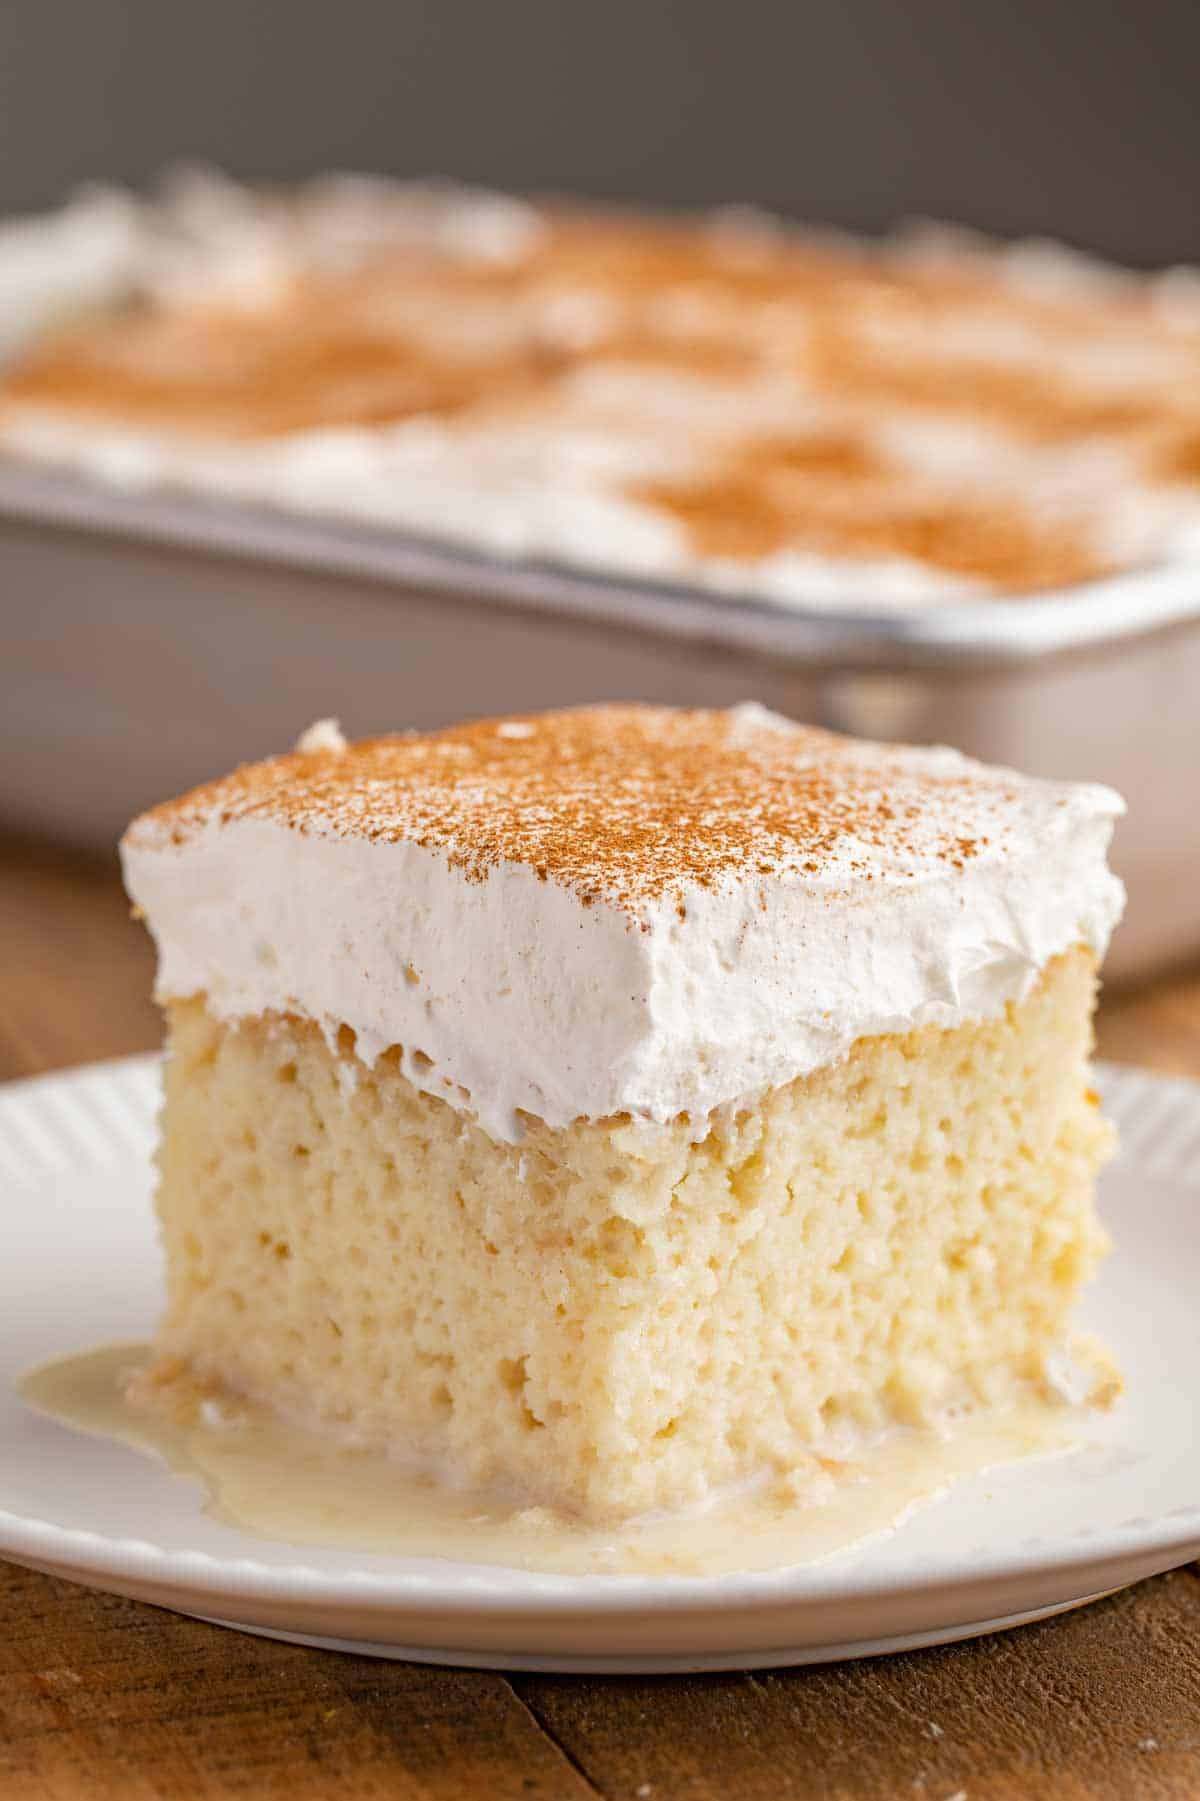 Slice of Tres Leches Cake on plate